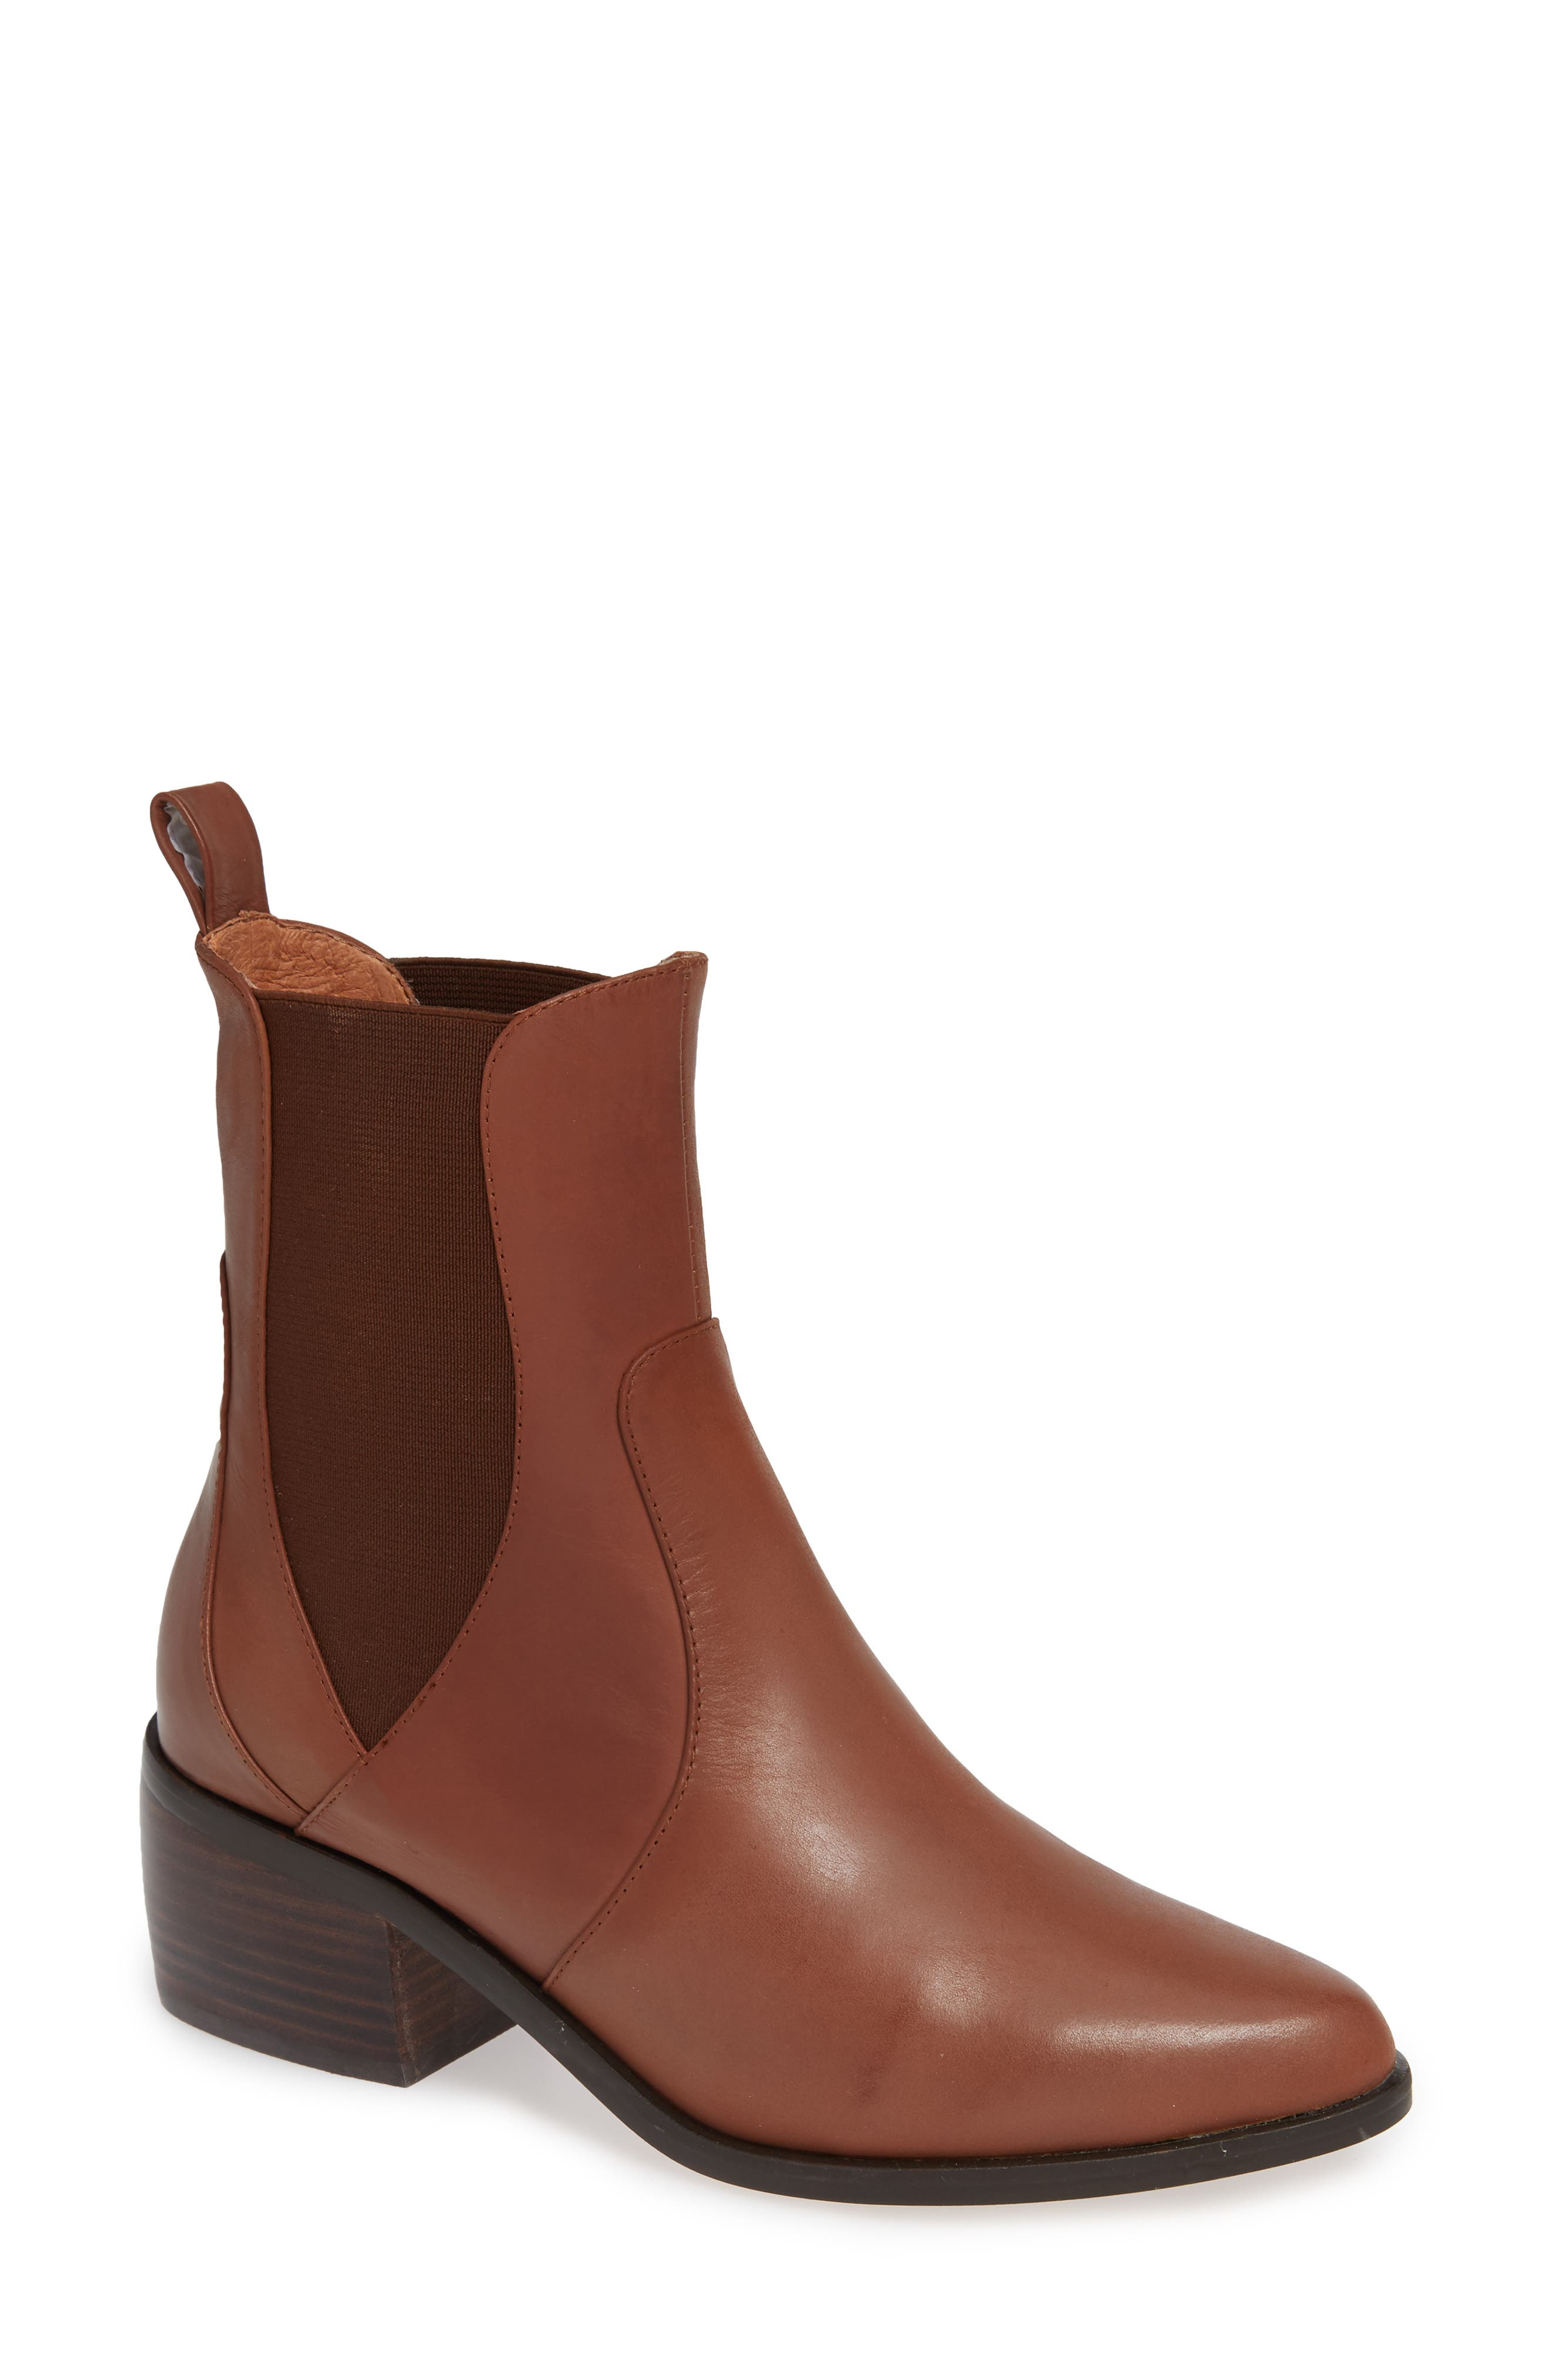 Genesis Bootie,                         Main,                         color, TAN LEATHER